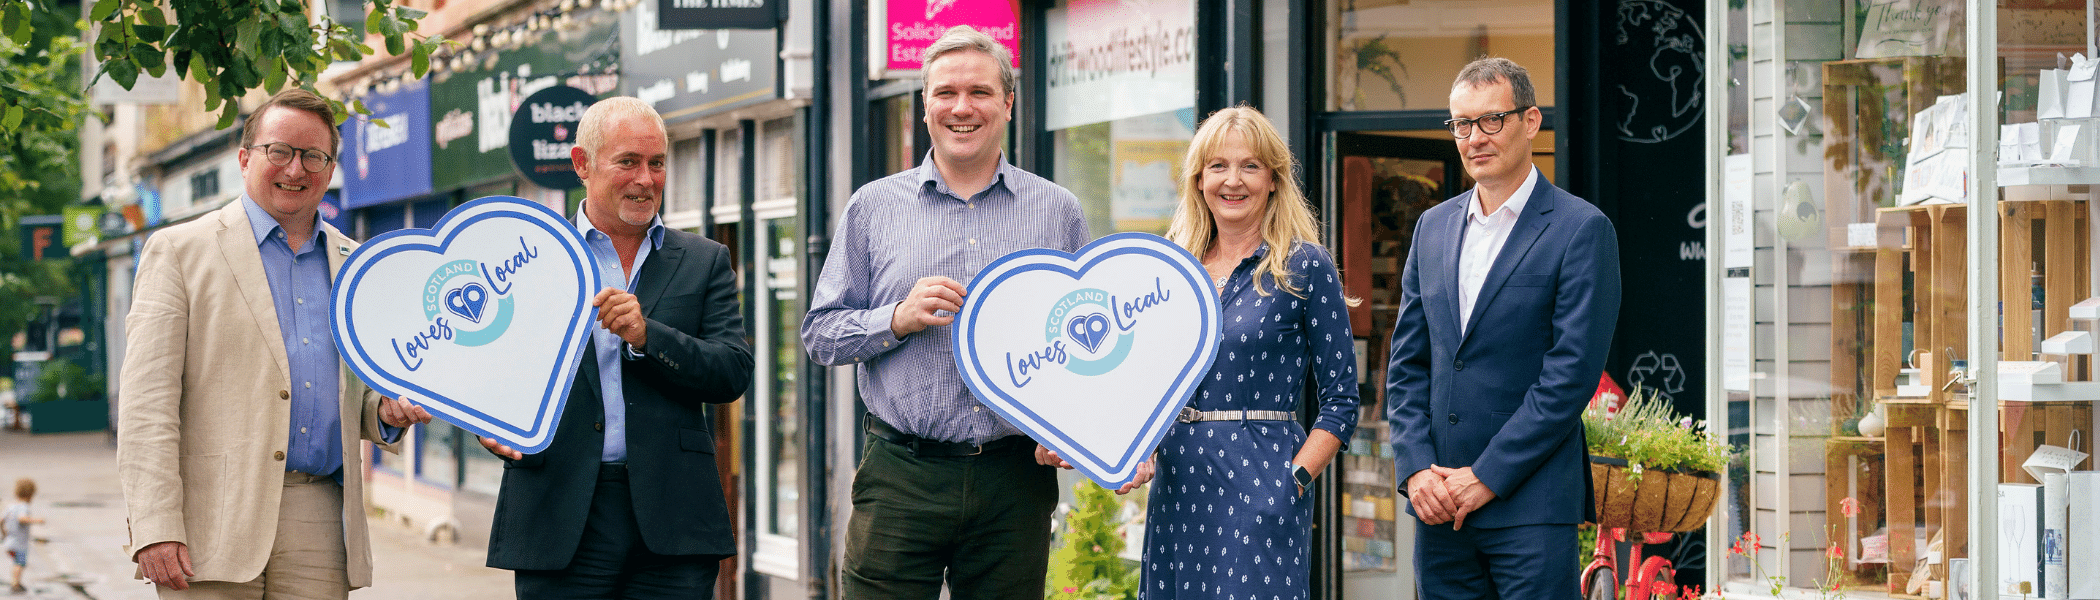 Scotland Loves Local launched in Dunbartonshire